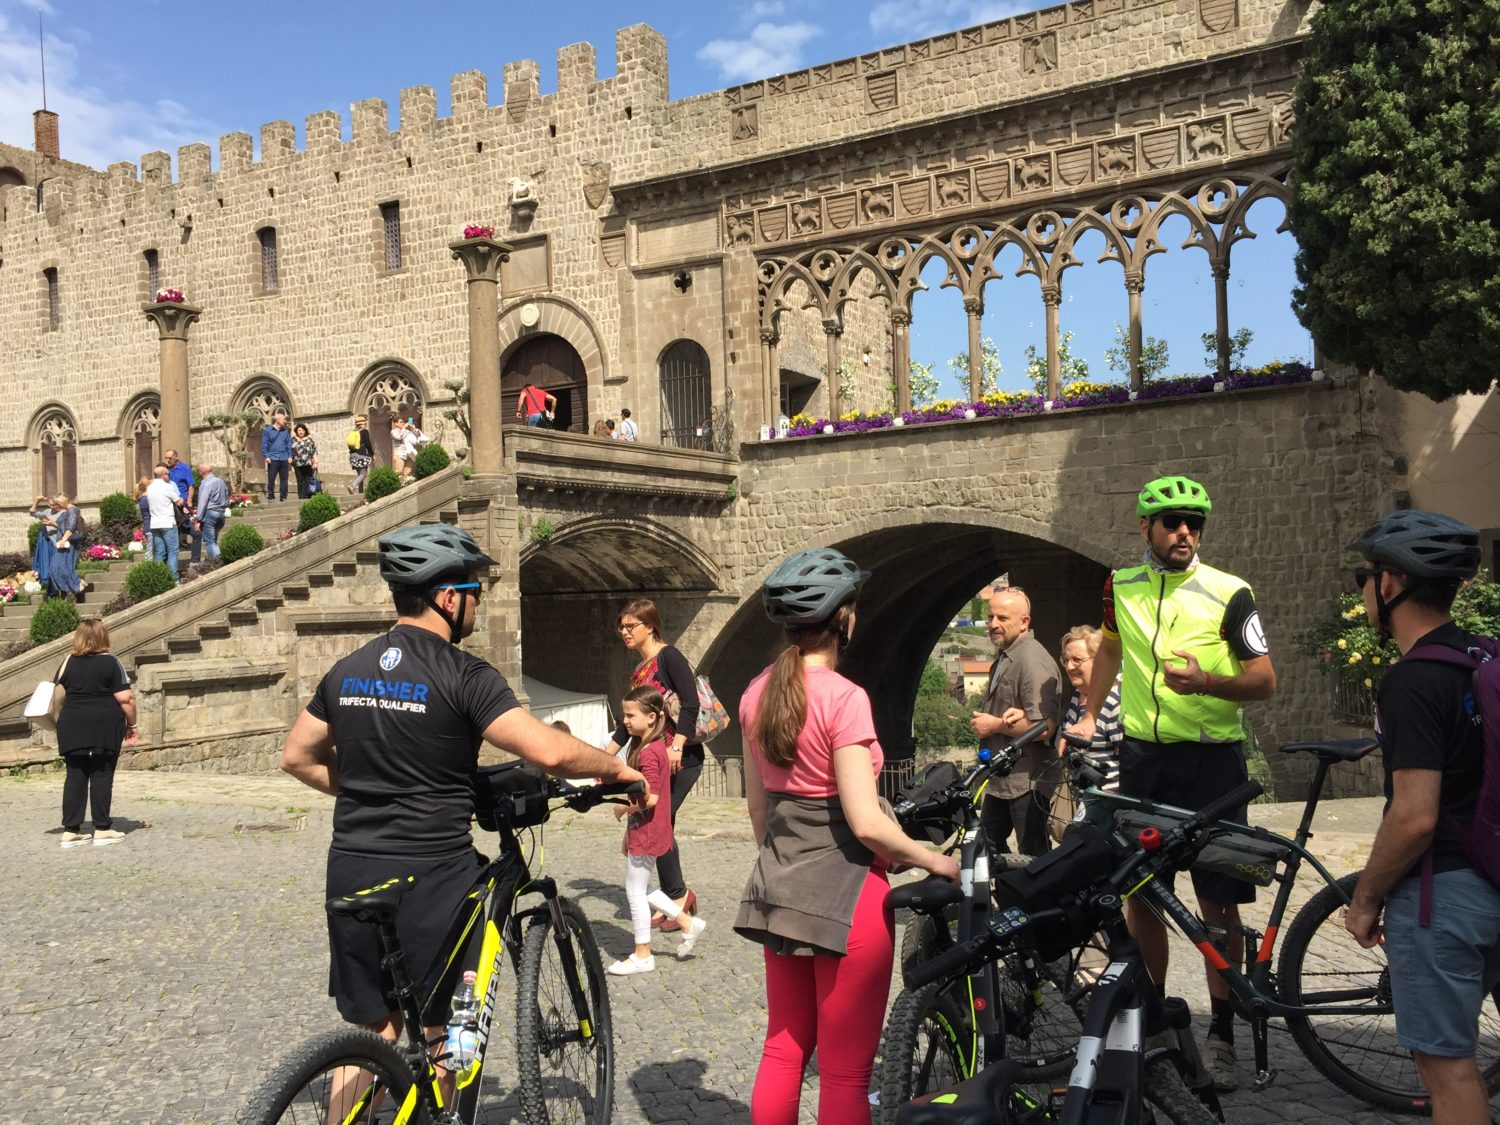 With the bike through the city of Viterbo: the Papal Palace